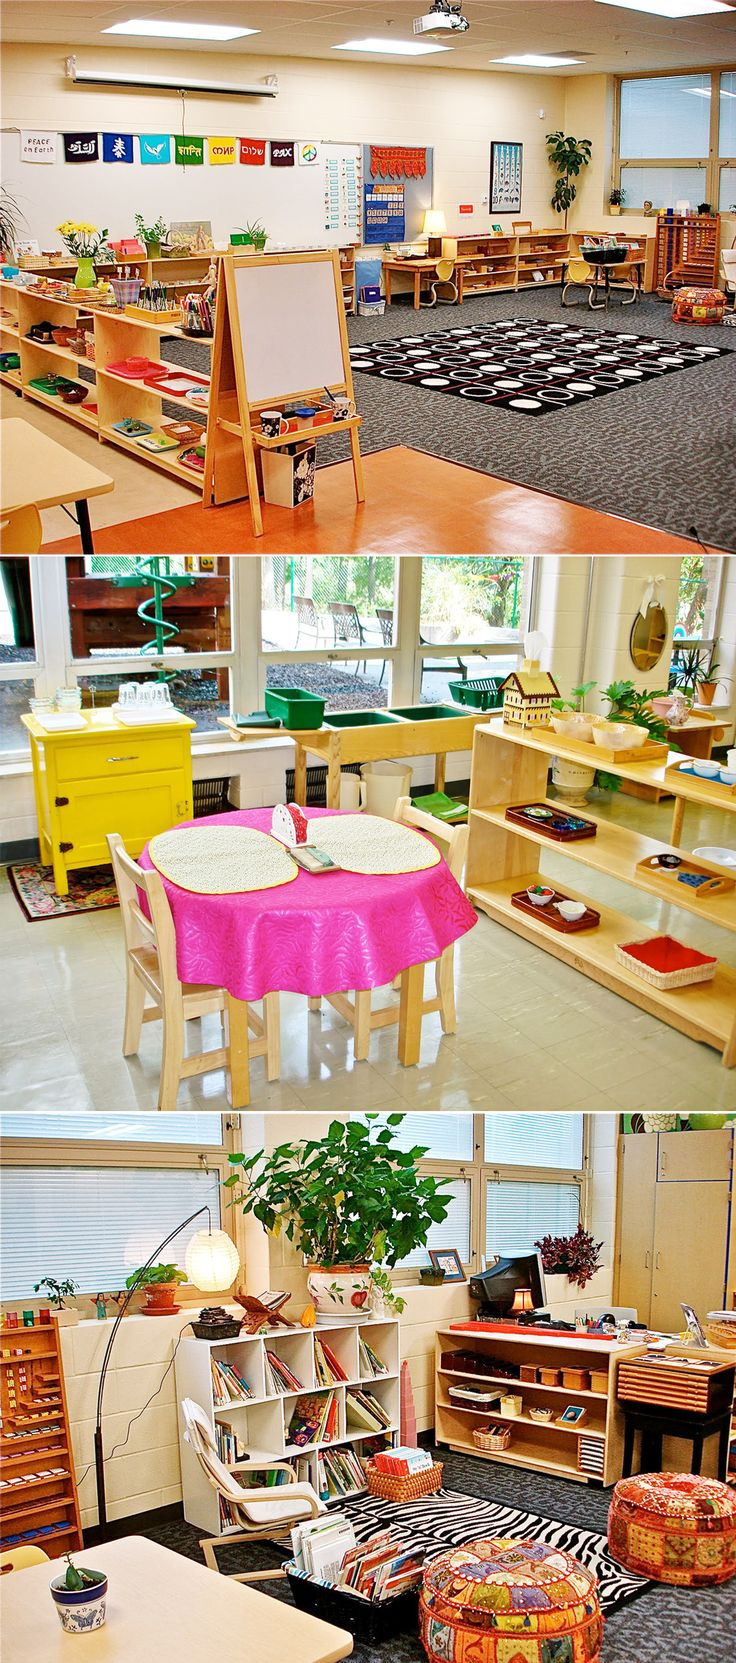 "Temper your jealousy, teachers. One can always dream. 1. A Polka Dot and Daisies Themed Classroom schoolgirlstyle.com 2. An Uber-Organized Classroom thecreativechalkboard.blogspot.com 3. A ""Modern Rustic"" Classroom justanightowl.com See more gorgeous photos here. 4. An Apple Orchard Themed Classroom schoolgirlstyle.com 5. A Comfy Reading Den and Meeting Place tunstalltimes.blogspot.ch 6. Sunlight-Drenched Toddler Montessori Classroom thenaturalchildlearningcommunity.com …"